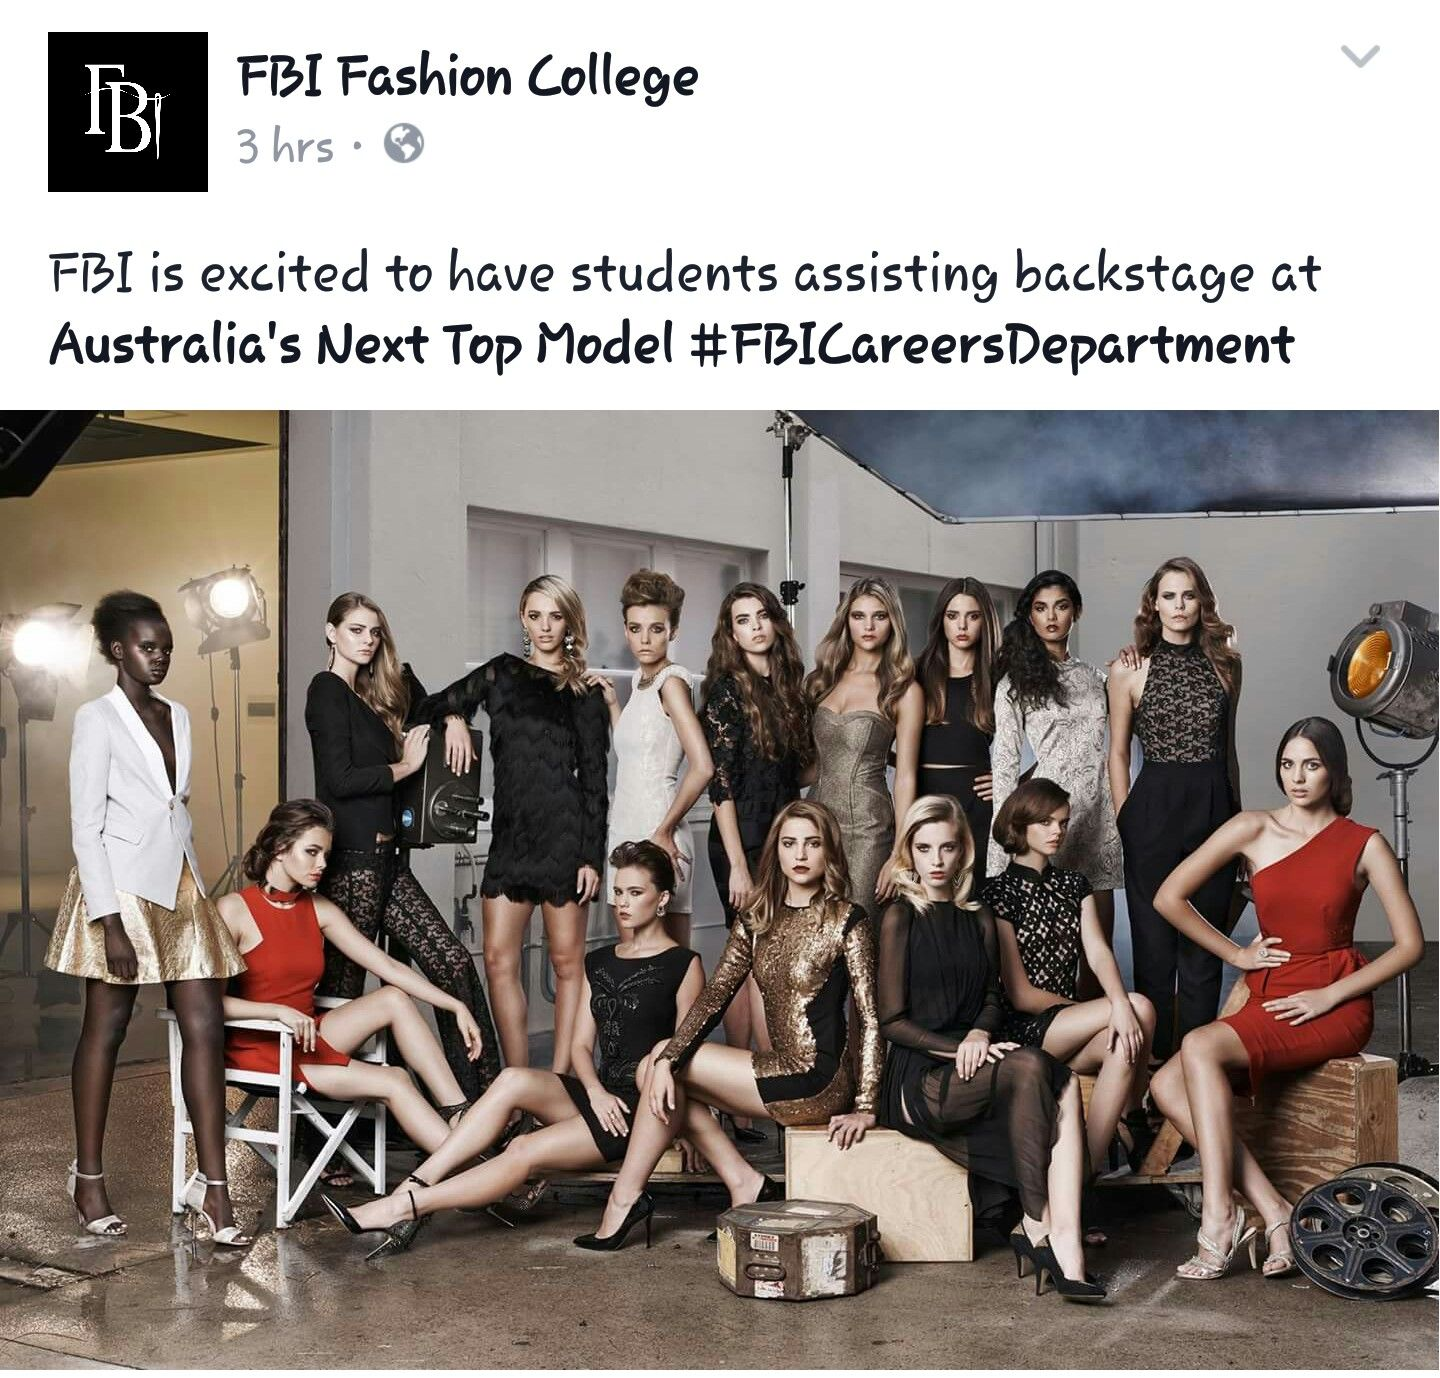 Pin By Monique Forward On Fbi Fashion College Australia S Next Top Model College Fashion Next Top Model